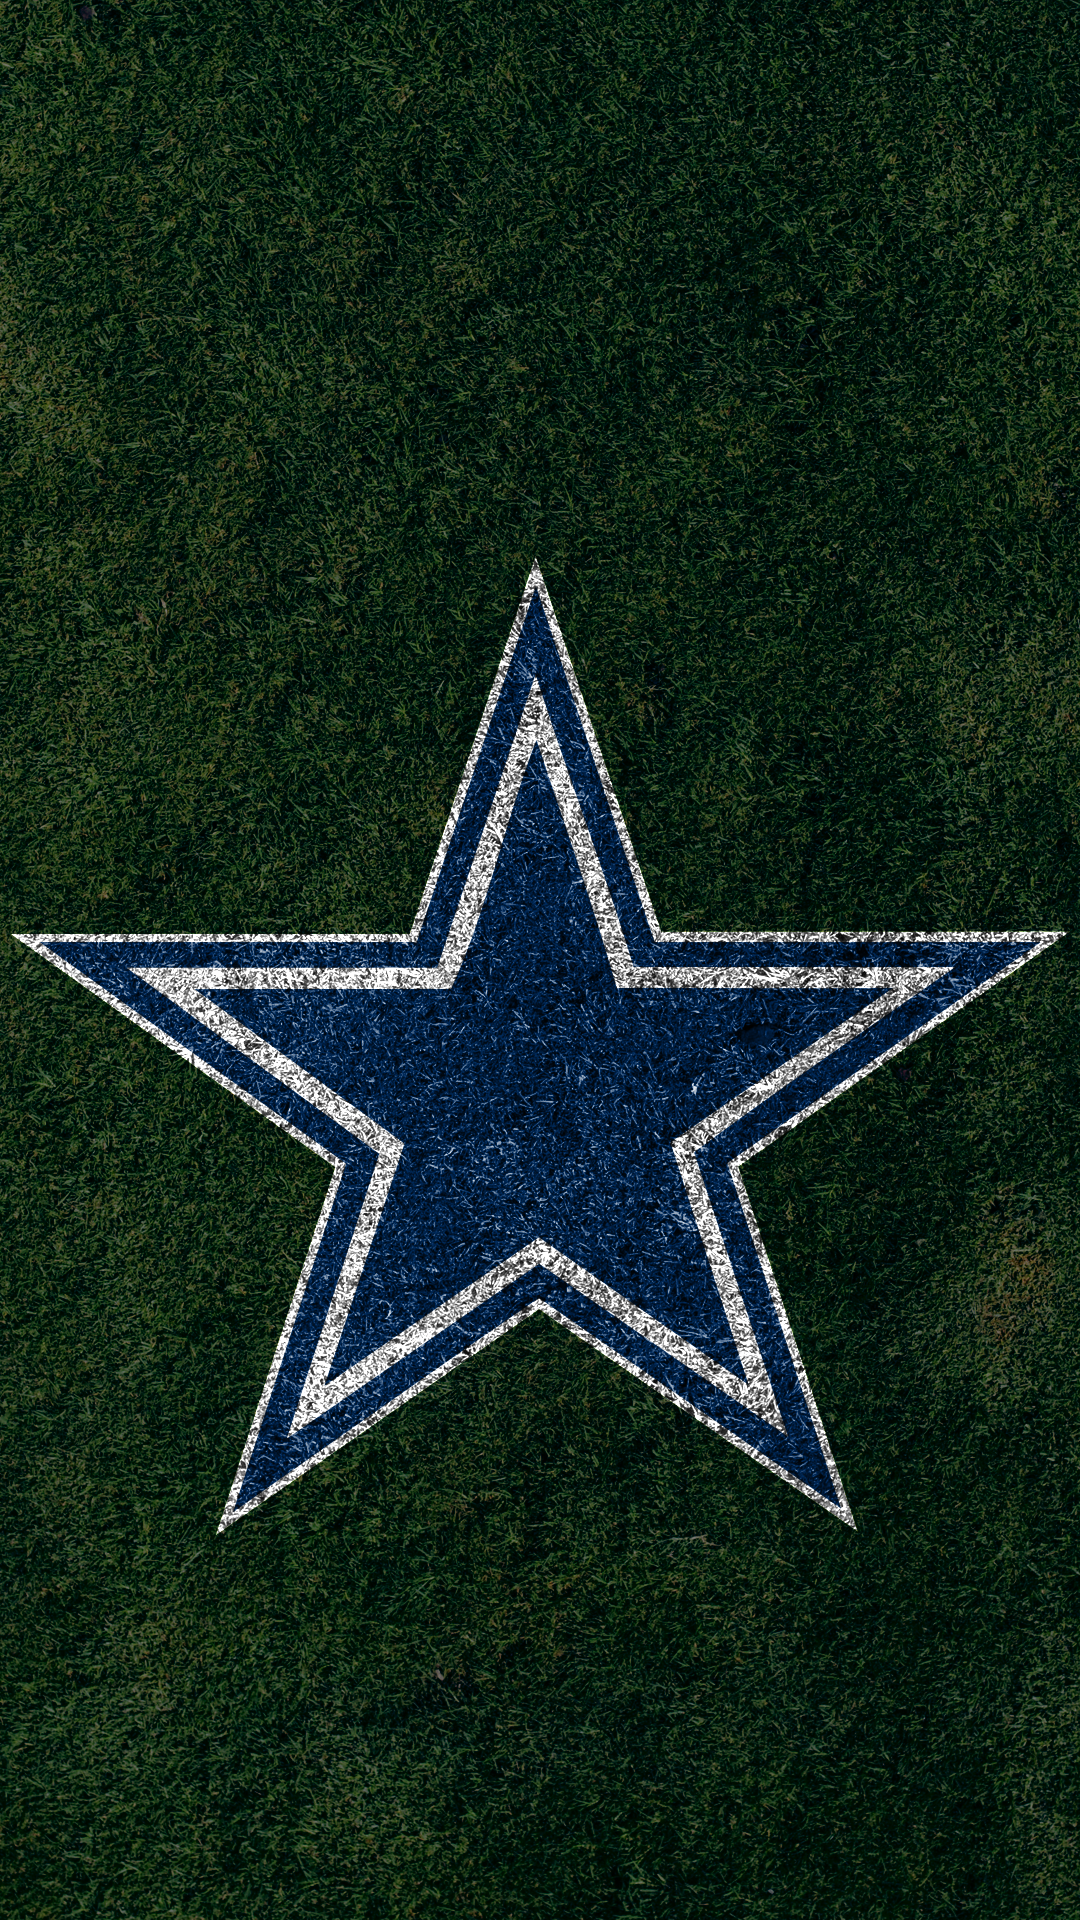 Dallas Cowboys Mobile Logo Wallpaper | Dallas cowboys ...